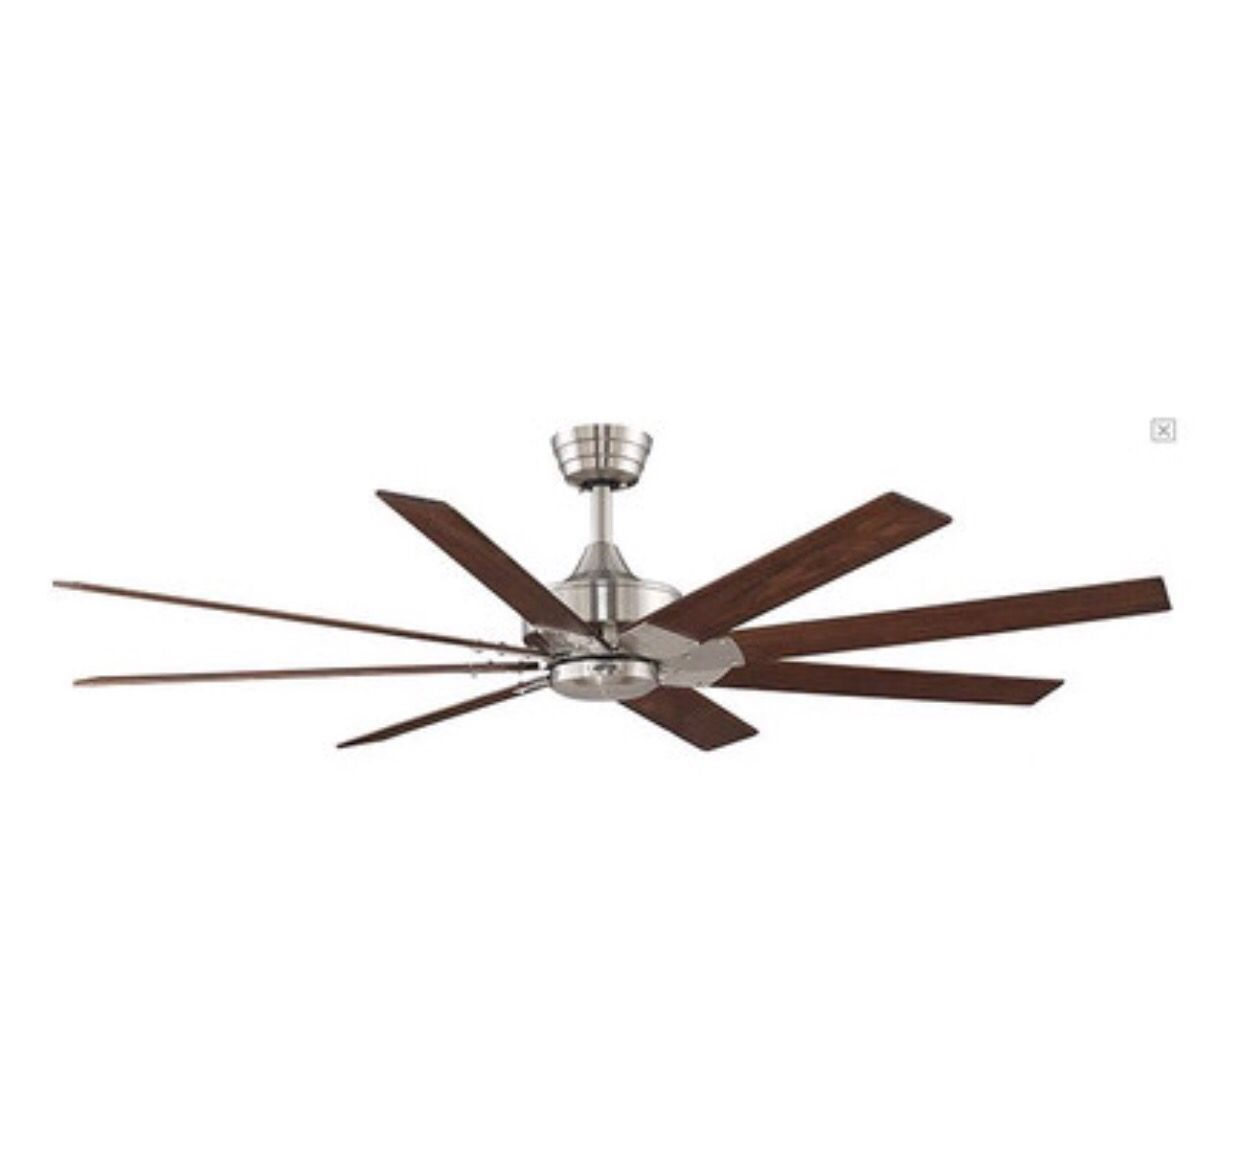 63 large ceiling fan for high ceilings fans pinterest 63 large ceiling fan for high ceilings aloadofball Gallery